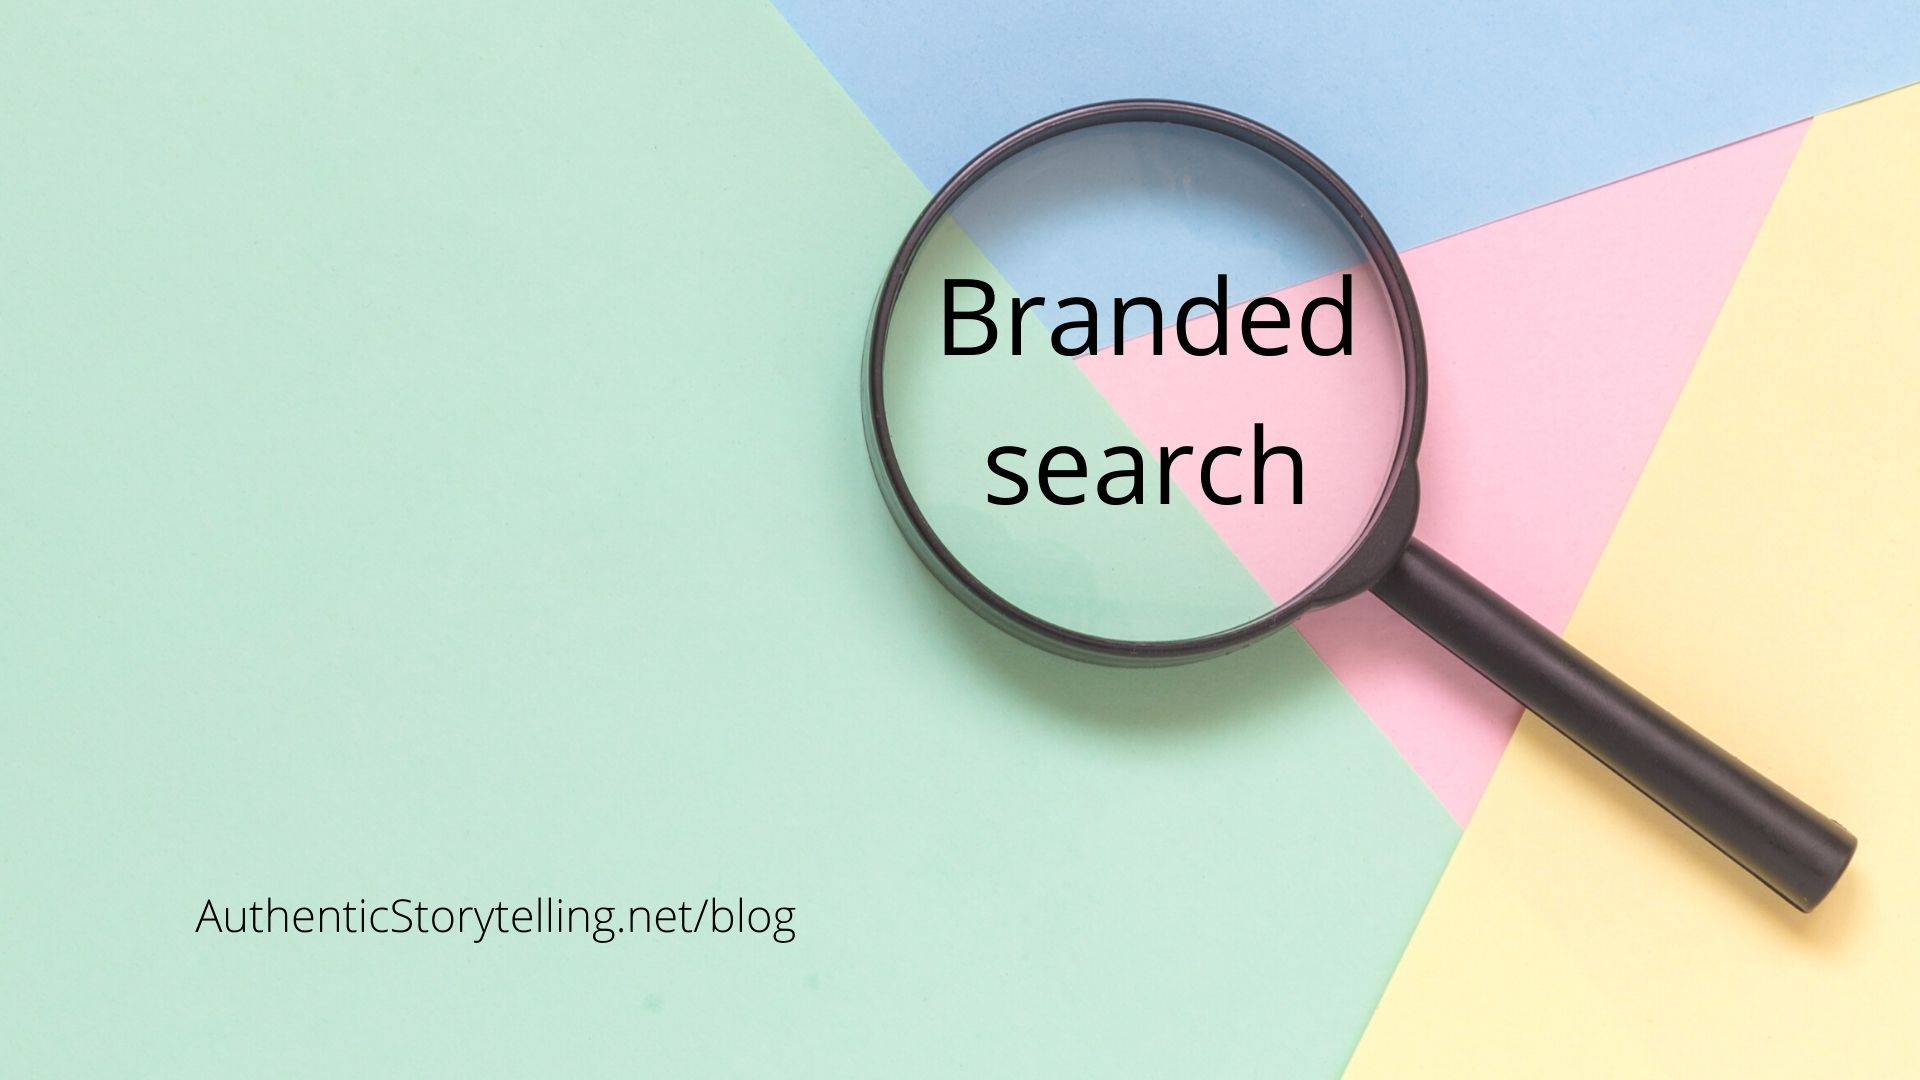 Branded search